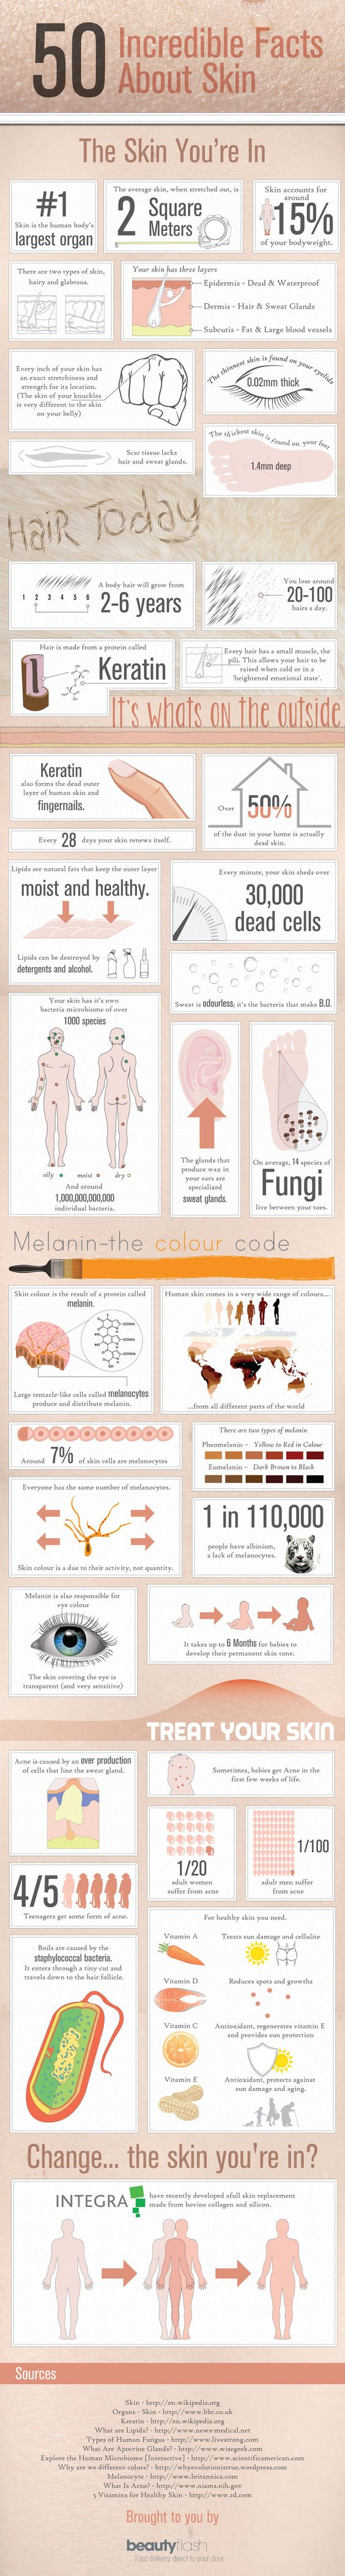 Here is a very interesting infographic from UK online beauty shop Beauty Flash with 50 interesting facts about the skin you are in.